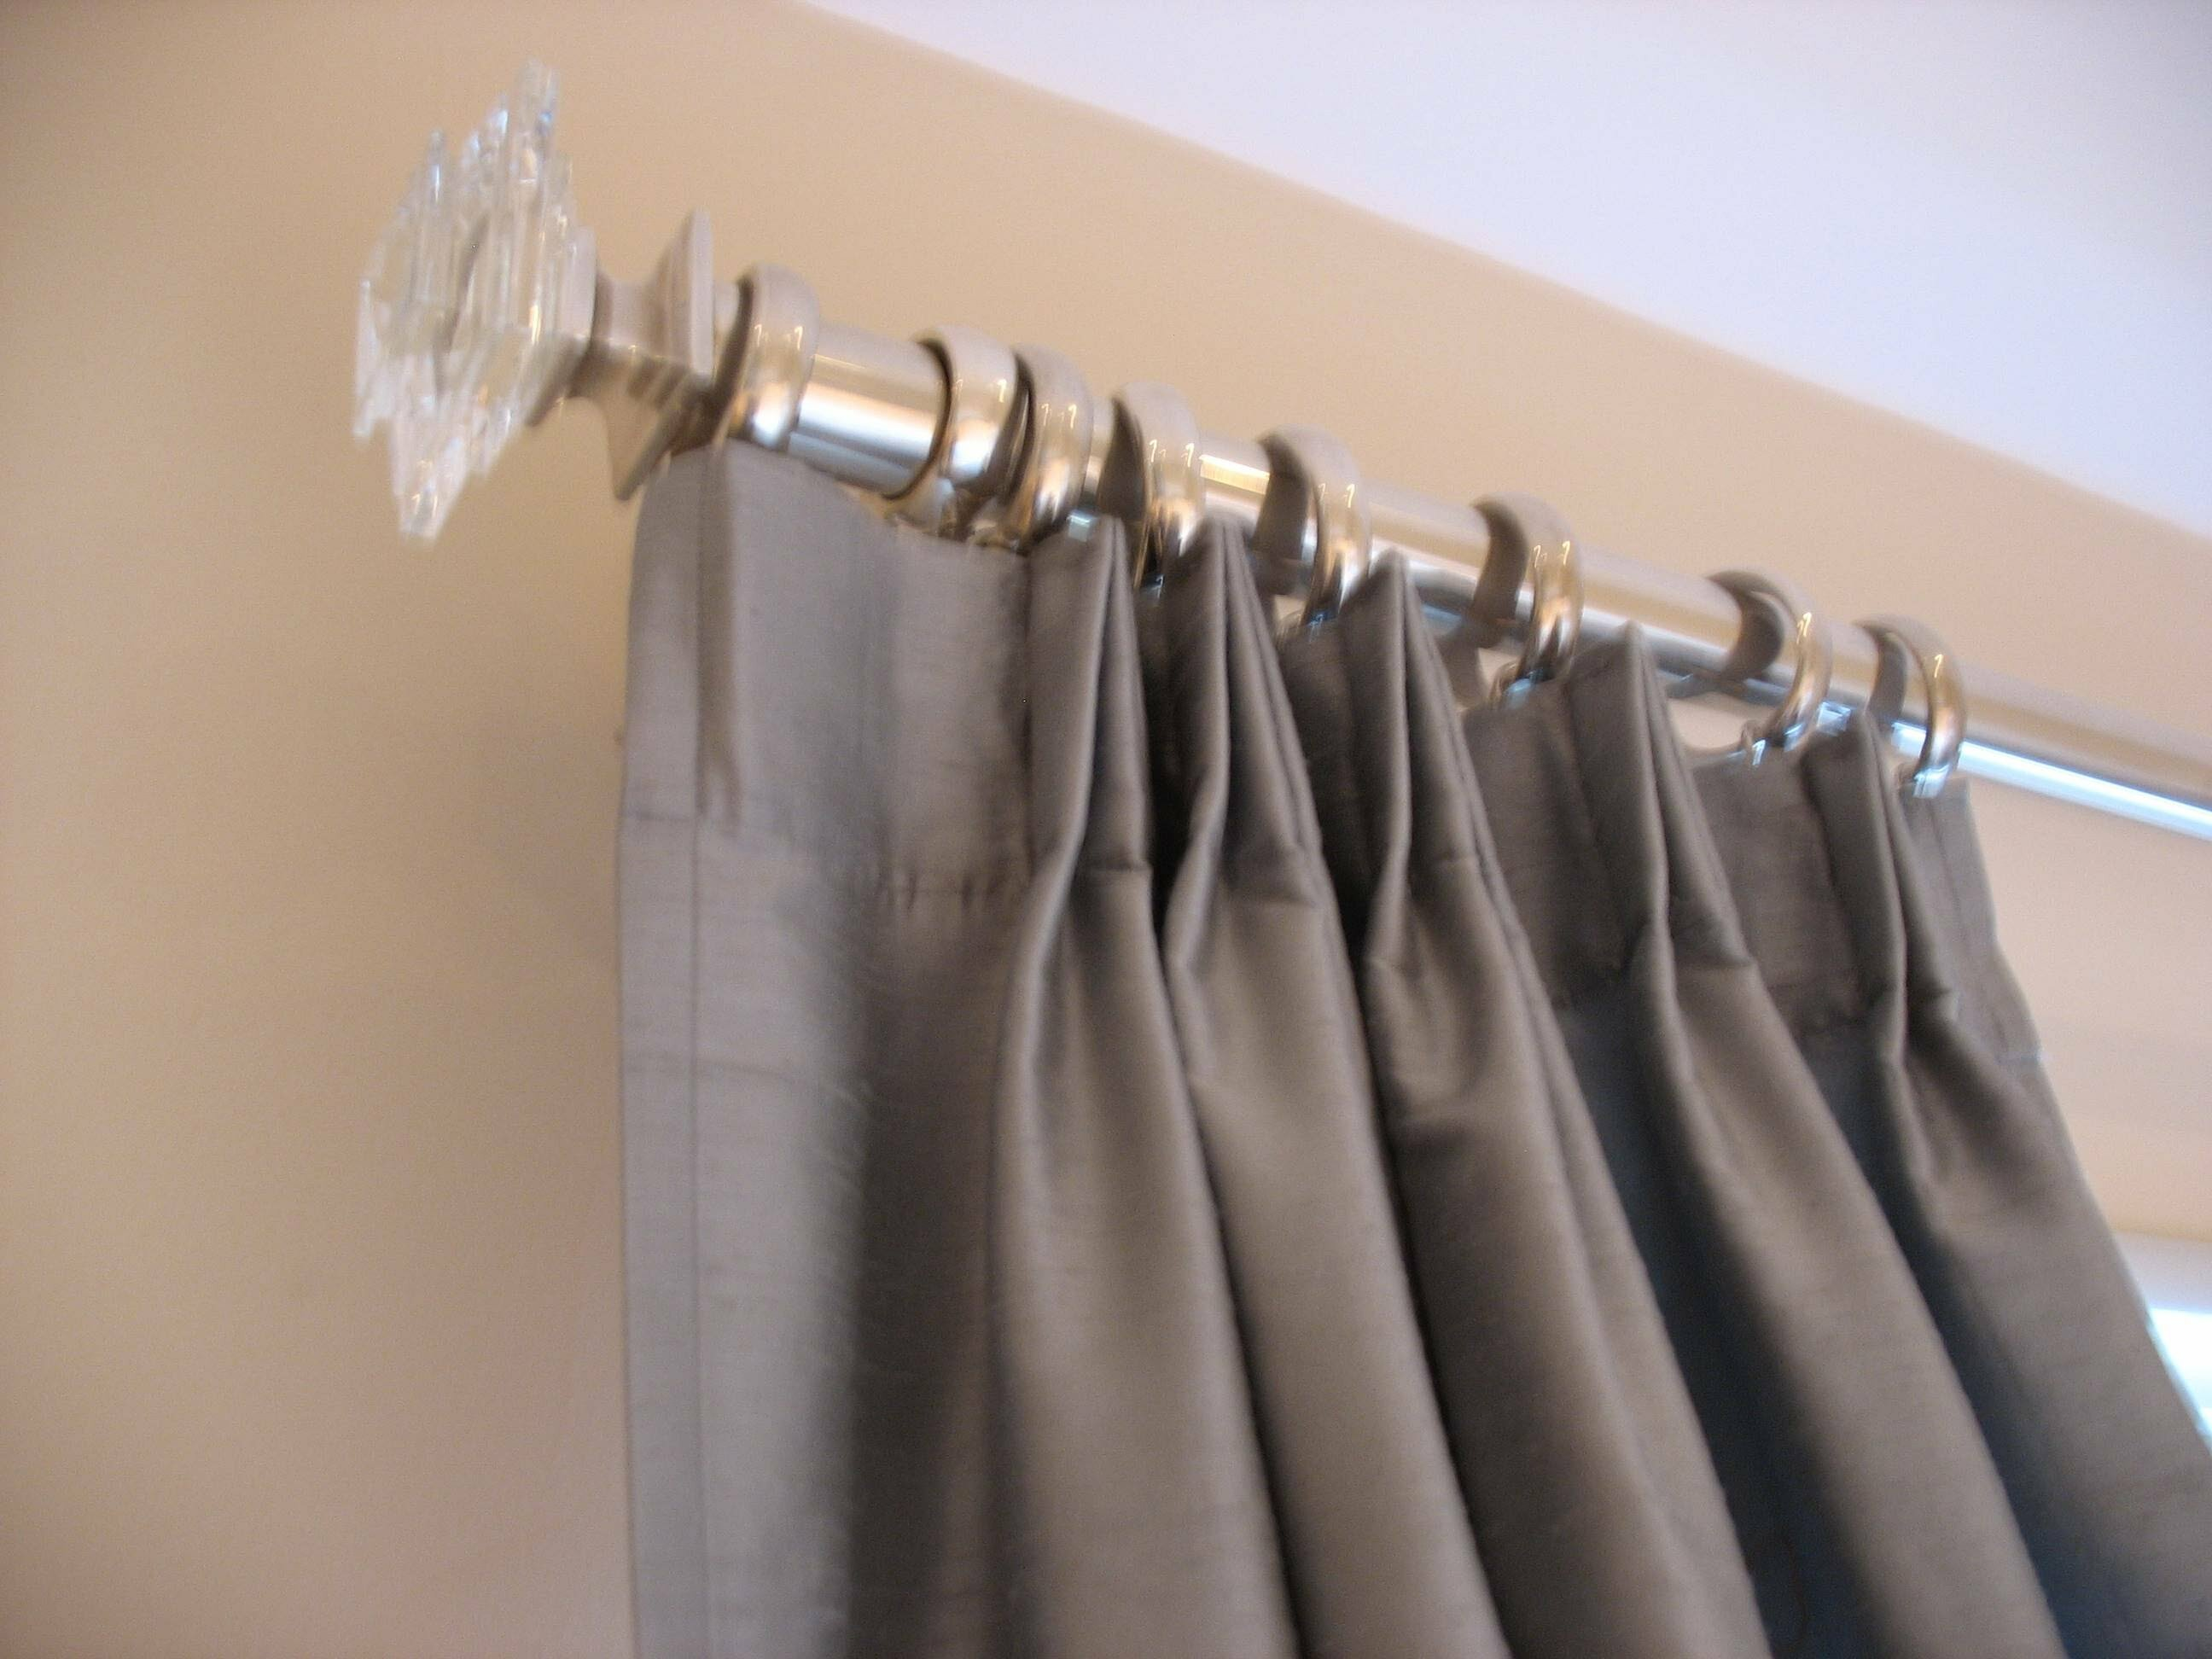 Curtain rod no screws